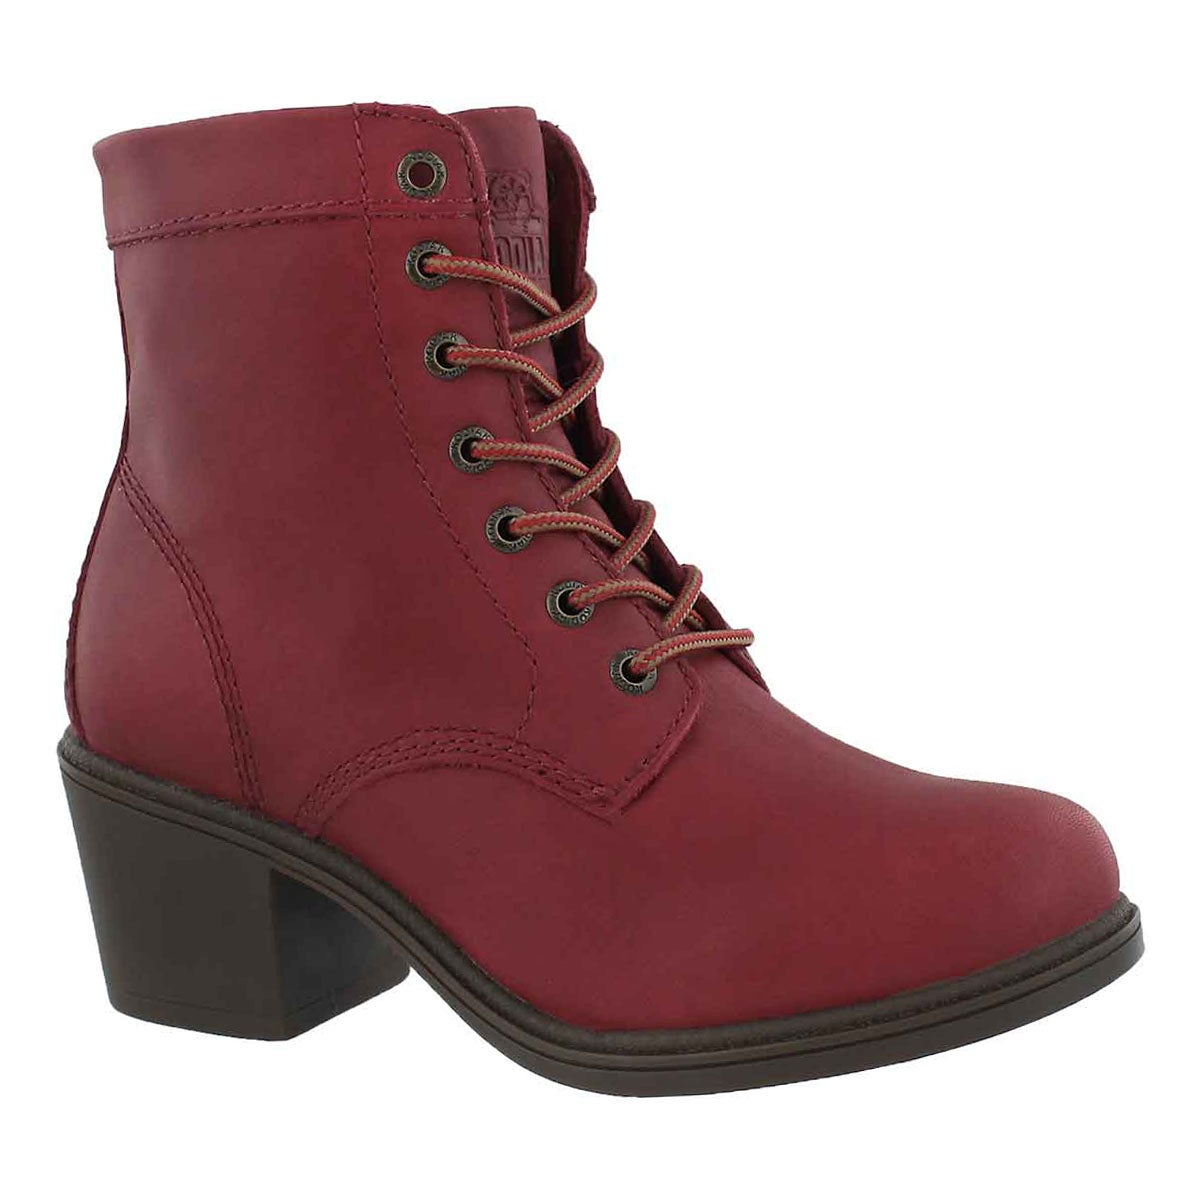 Women's CLAIRE red waterproof ankle booties